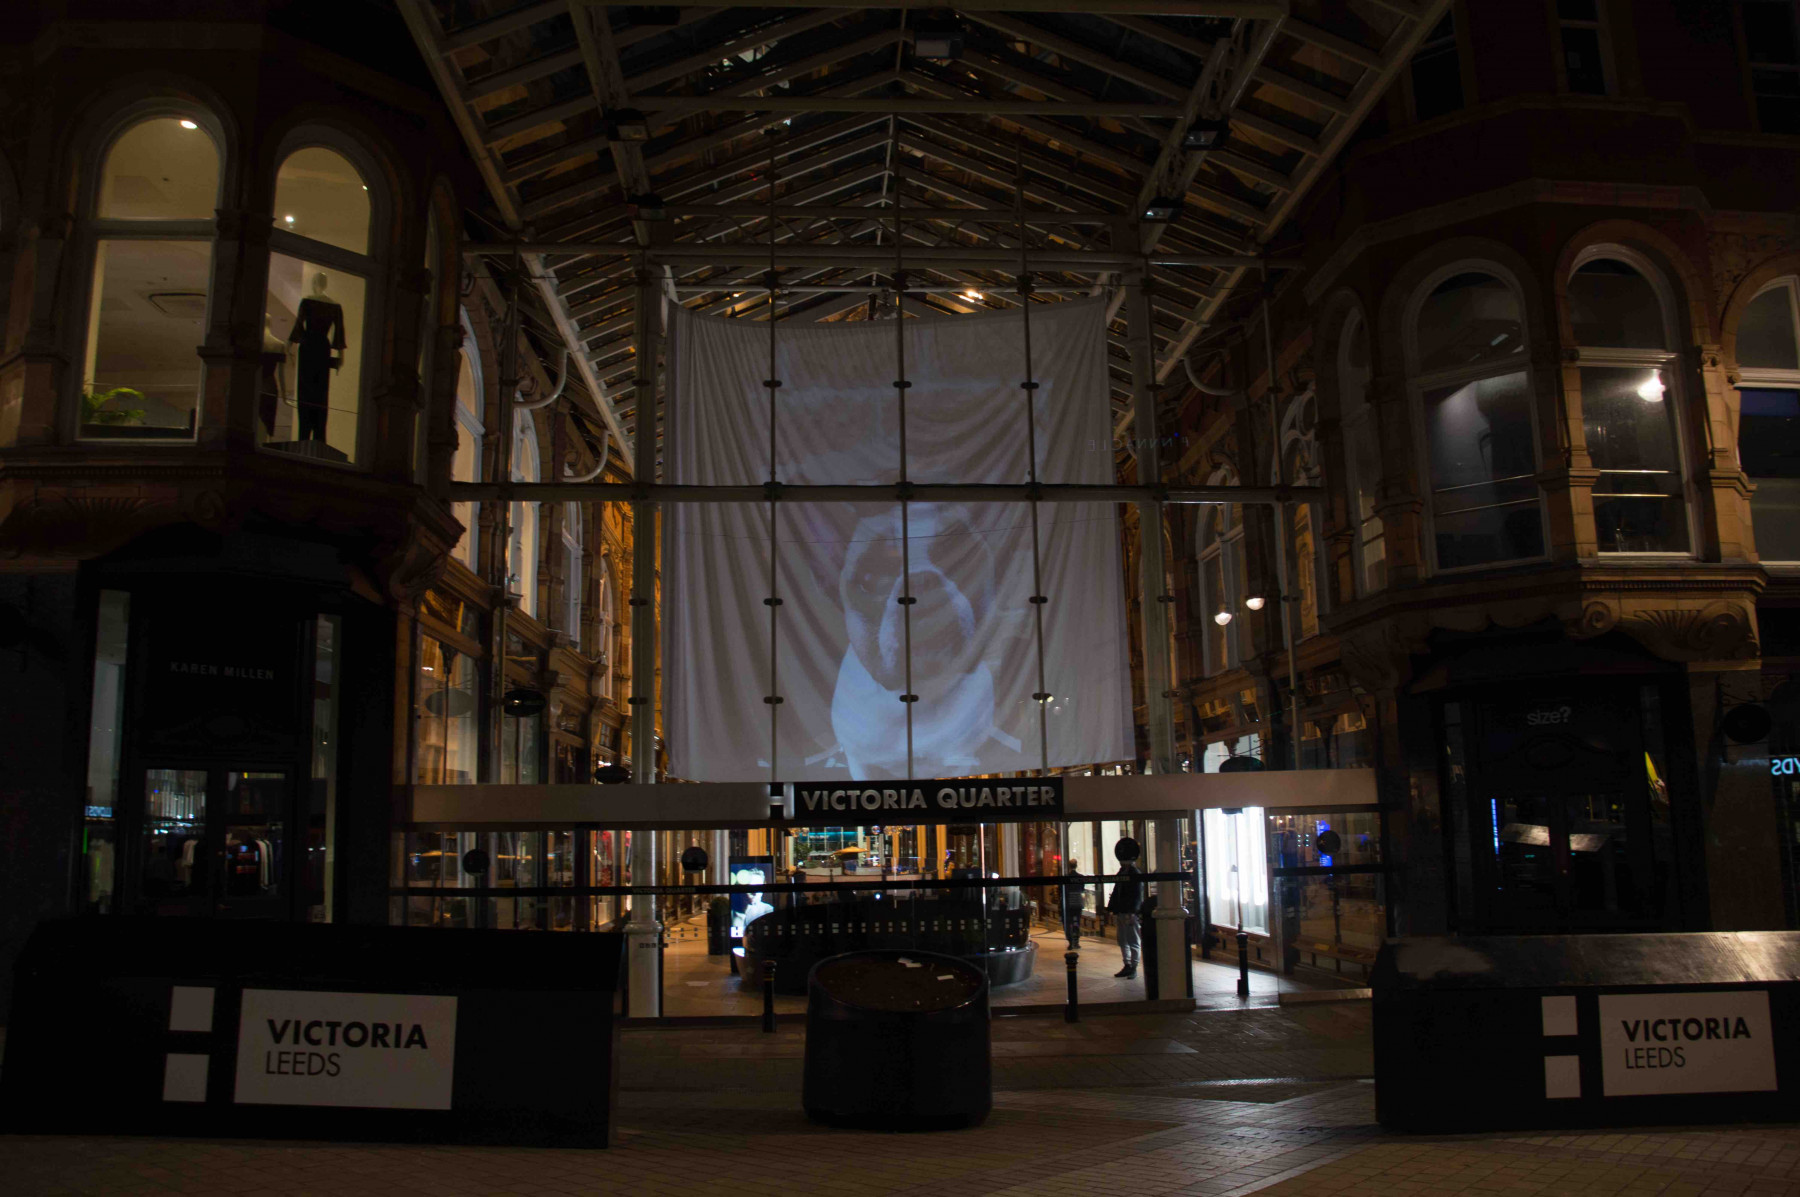 Carat leeds has used a huge 46 ft projection over the entrance of the citys victoria quarter as part of an engagement campaign for the light night leeds